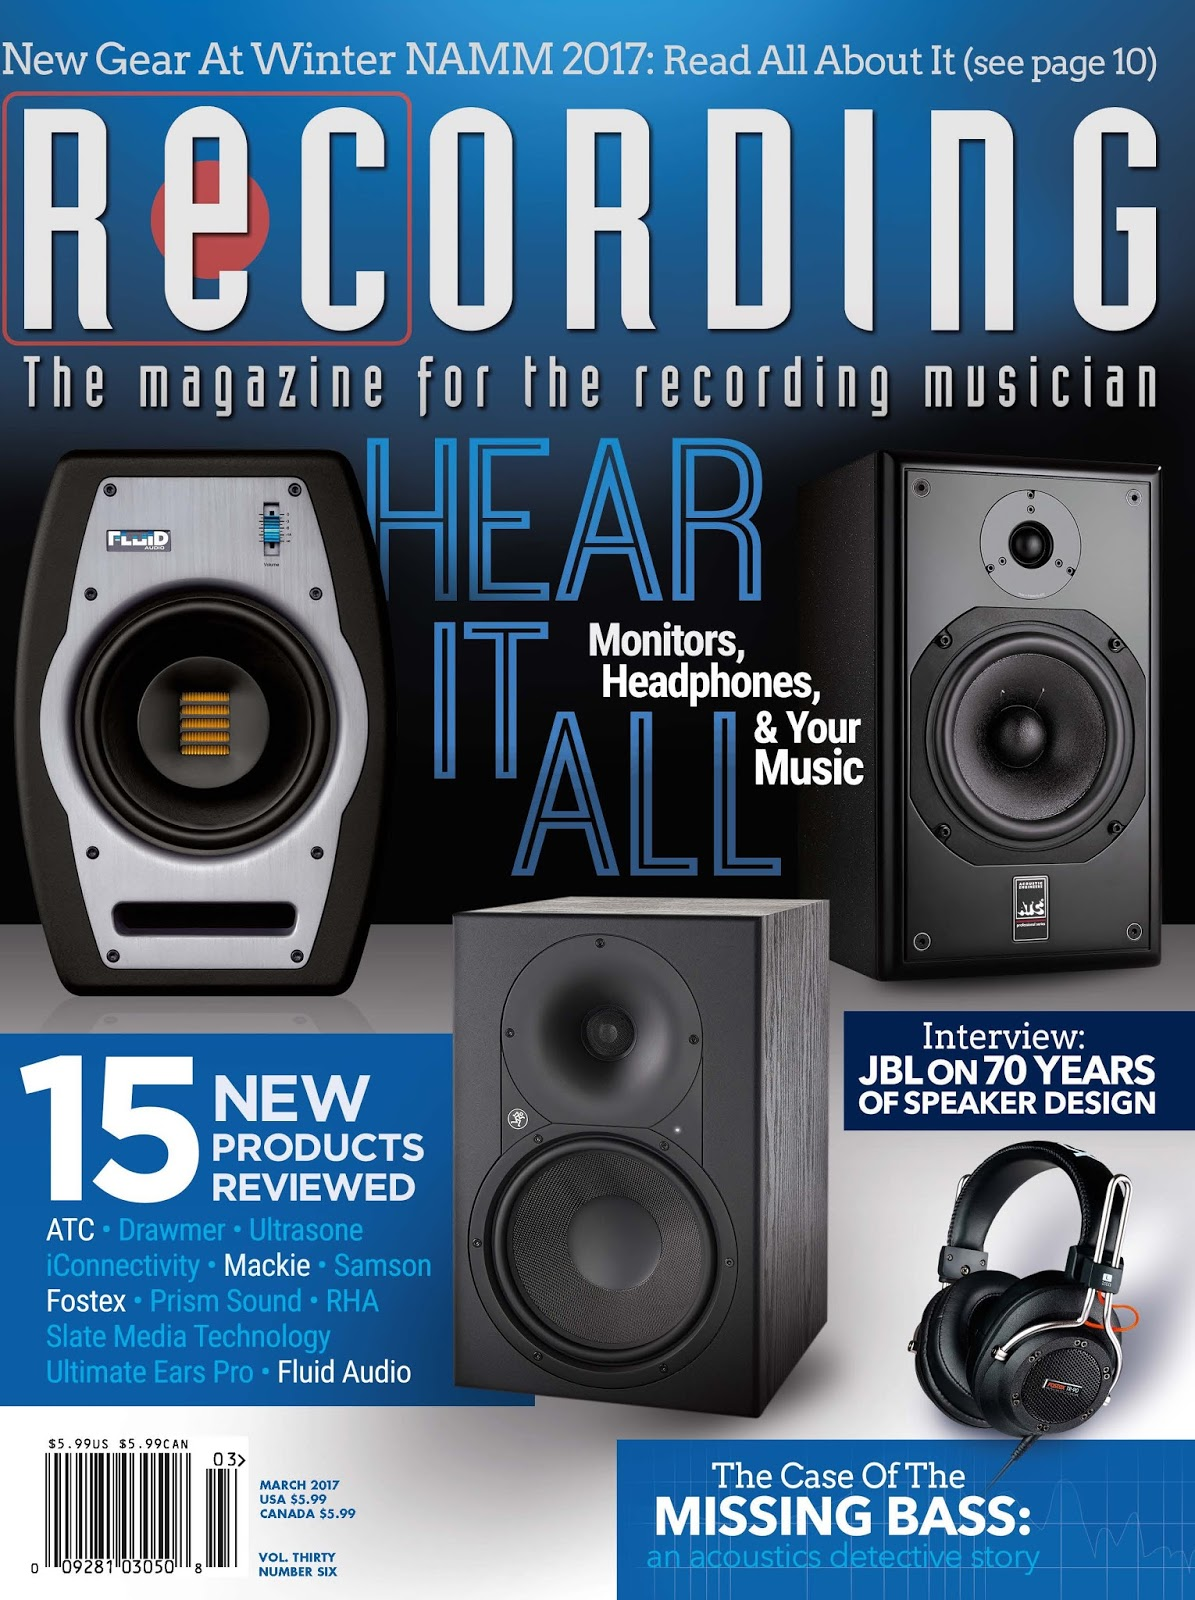 Pick of the Hits - JBL Professional by HARMAN, Recording